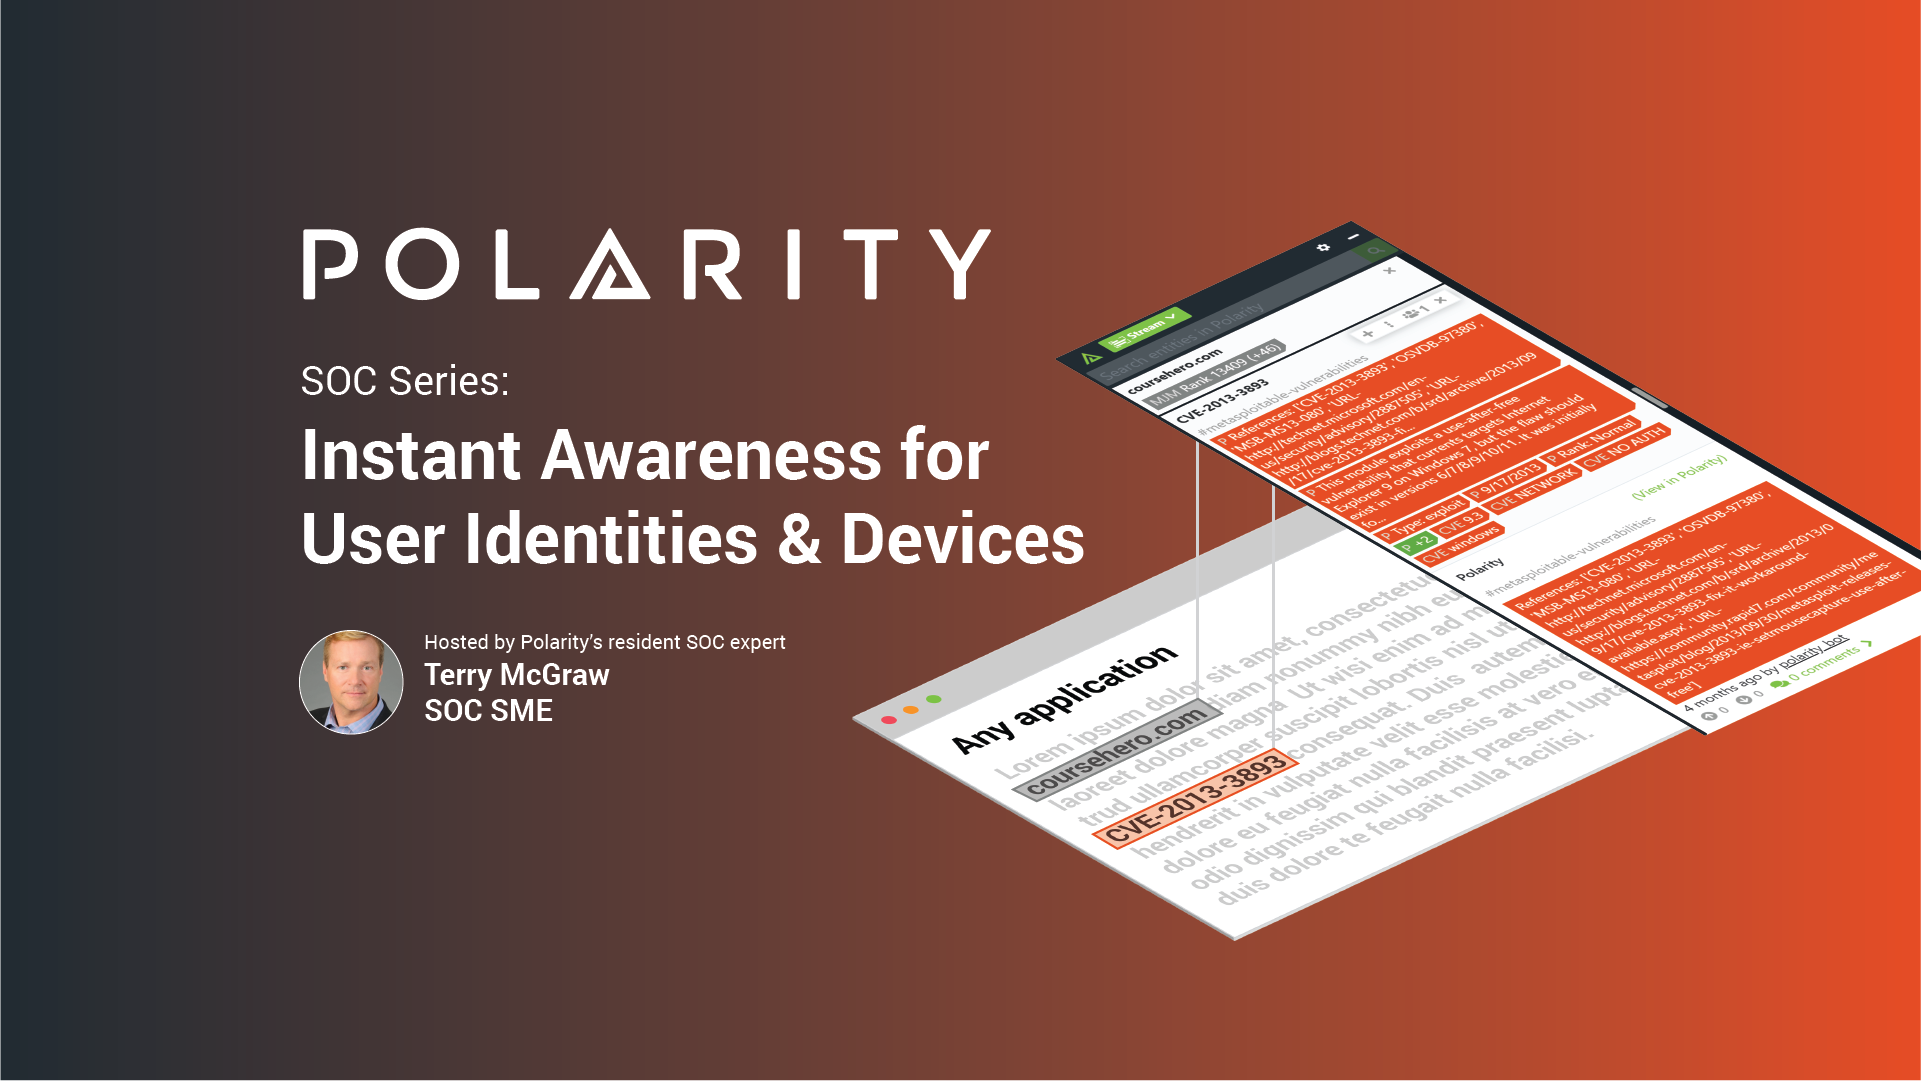 SOC Series: Instant Awareness for User Identities & Devices cover image